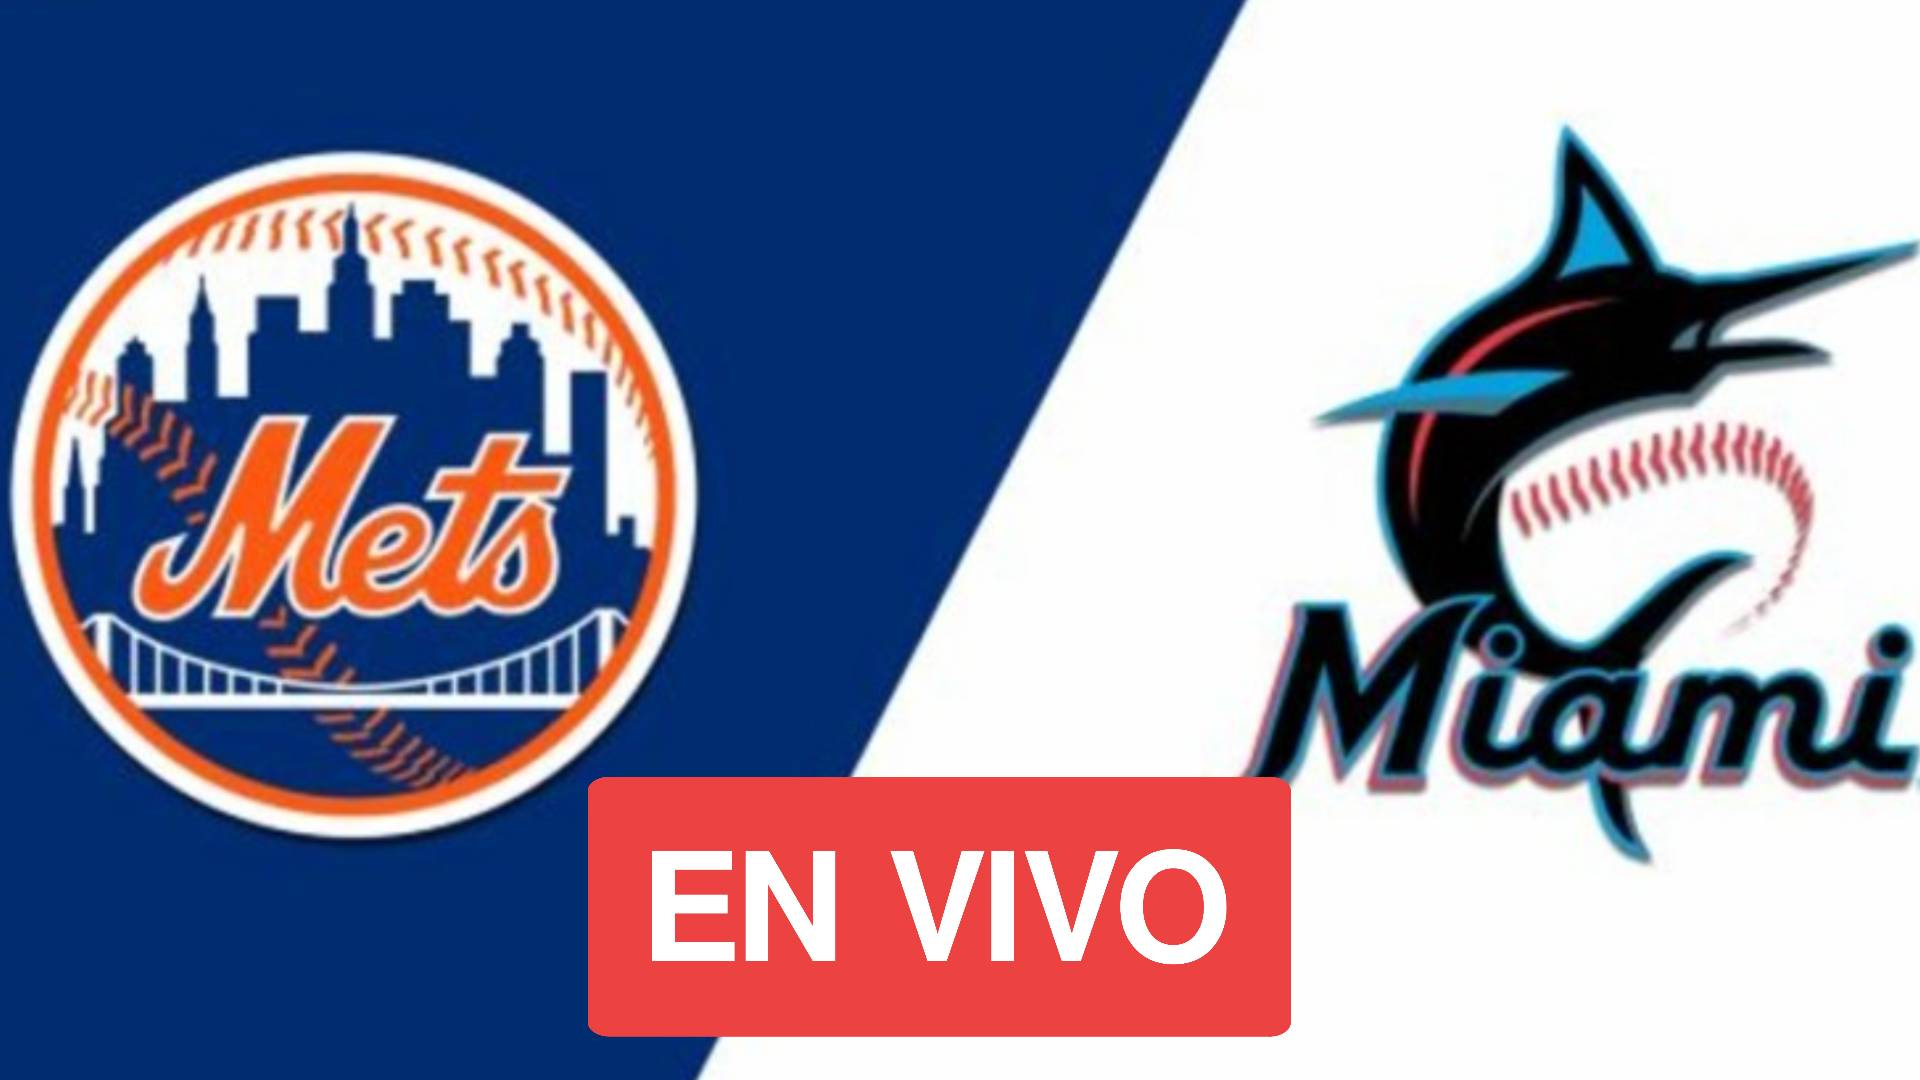 En vivo: New York Mets VS Miami Marlins-2021 Major League Baseball